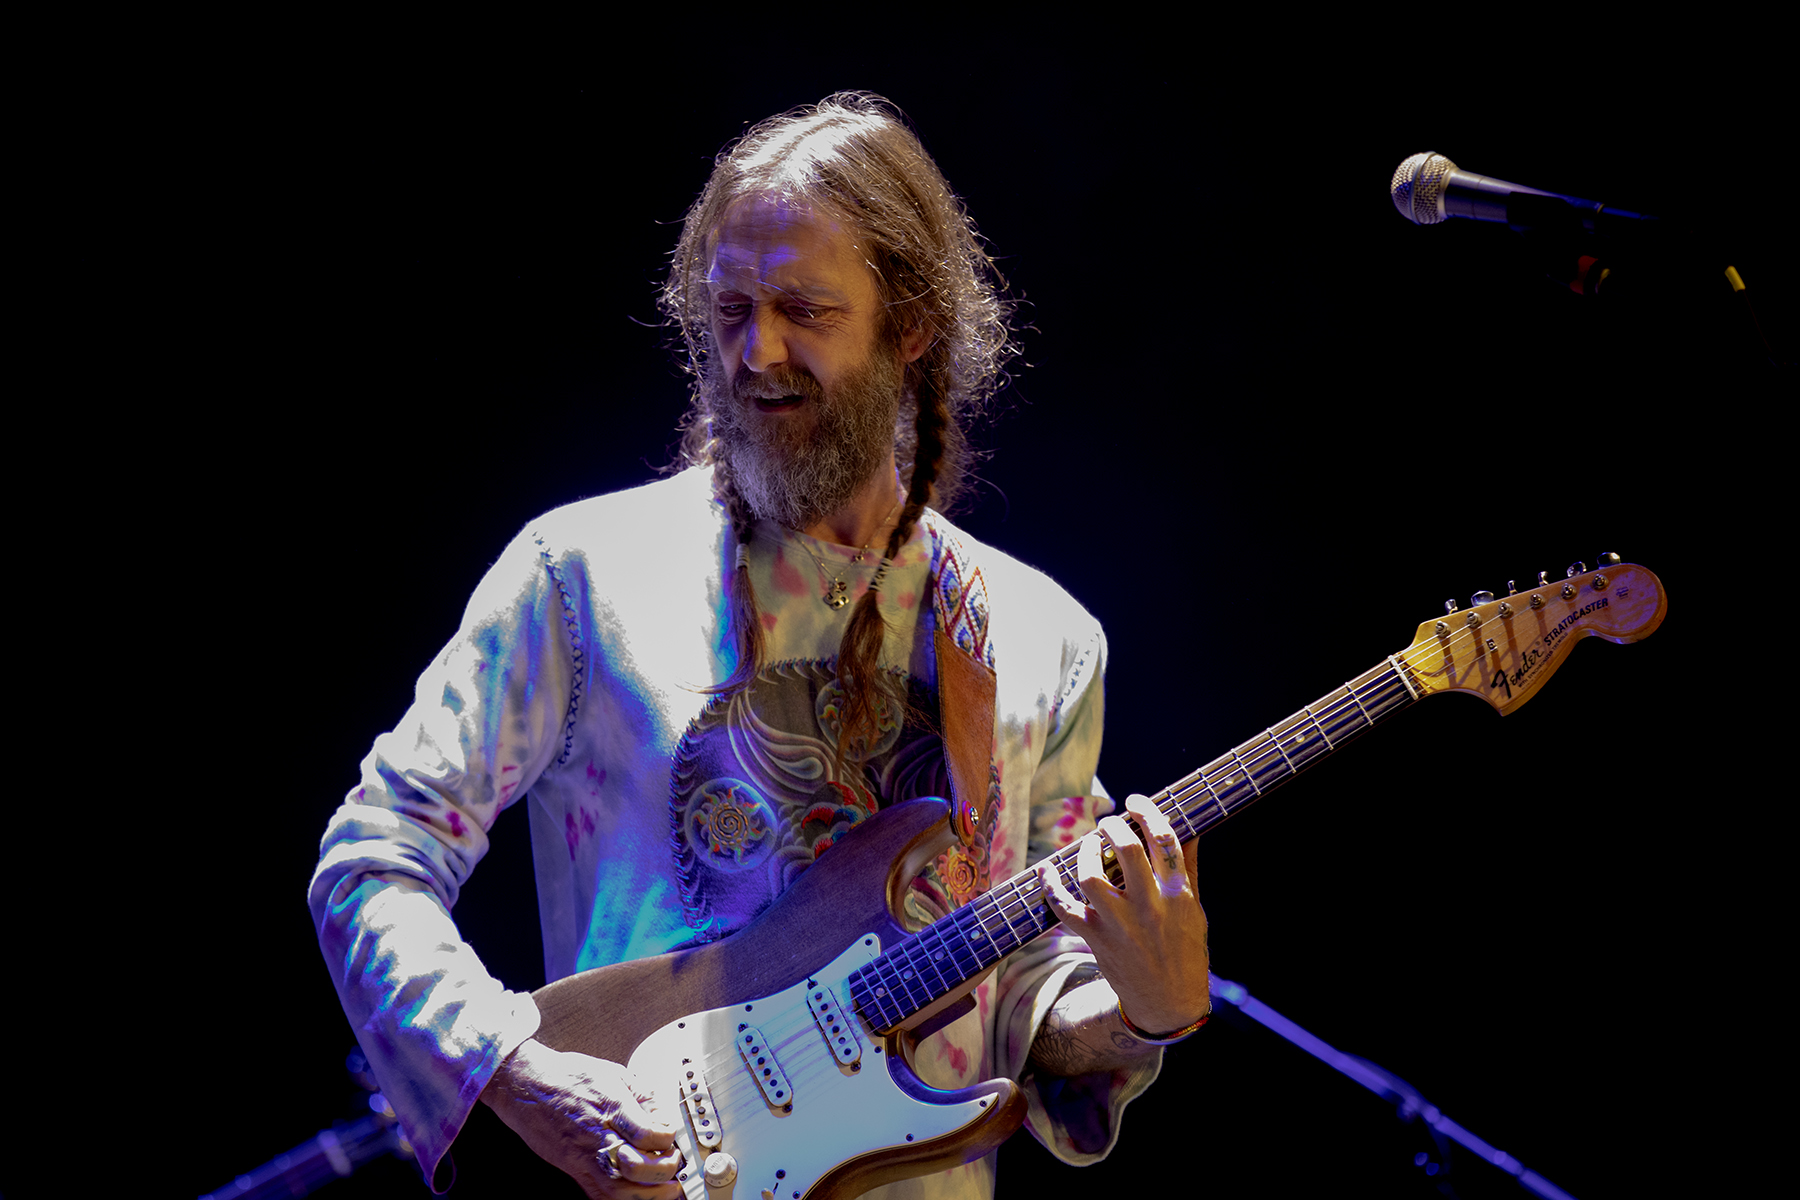 CHRIS ROBINSON BROTHERHOOD TAKES BROOKLYN ON A CALIFORNIA TRIP